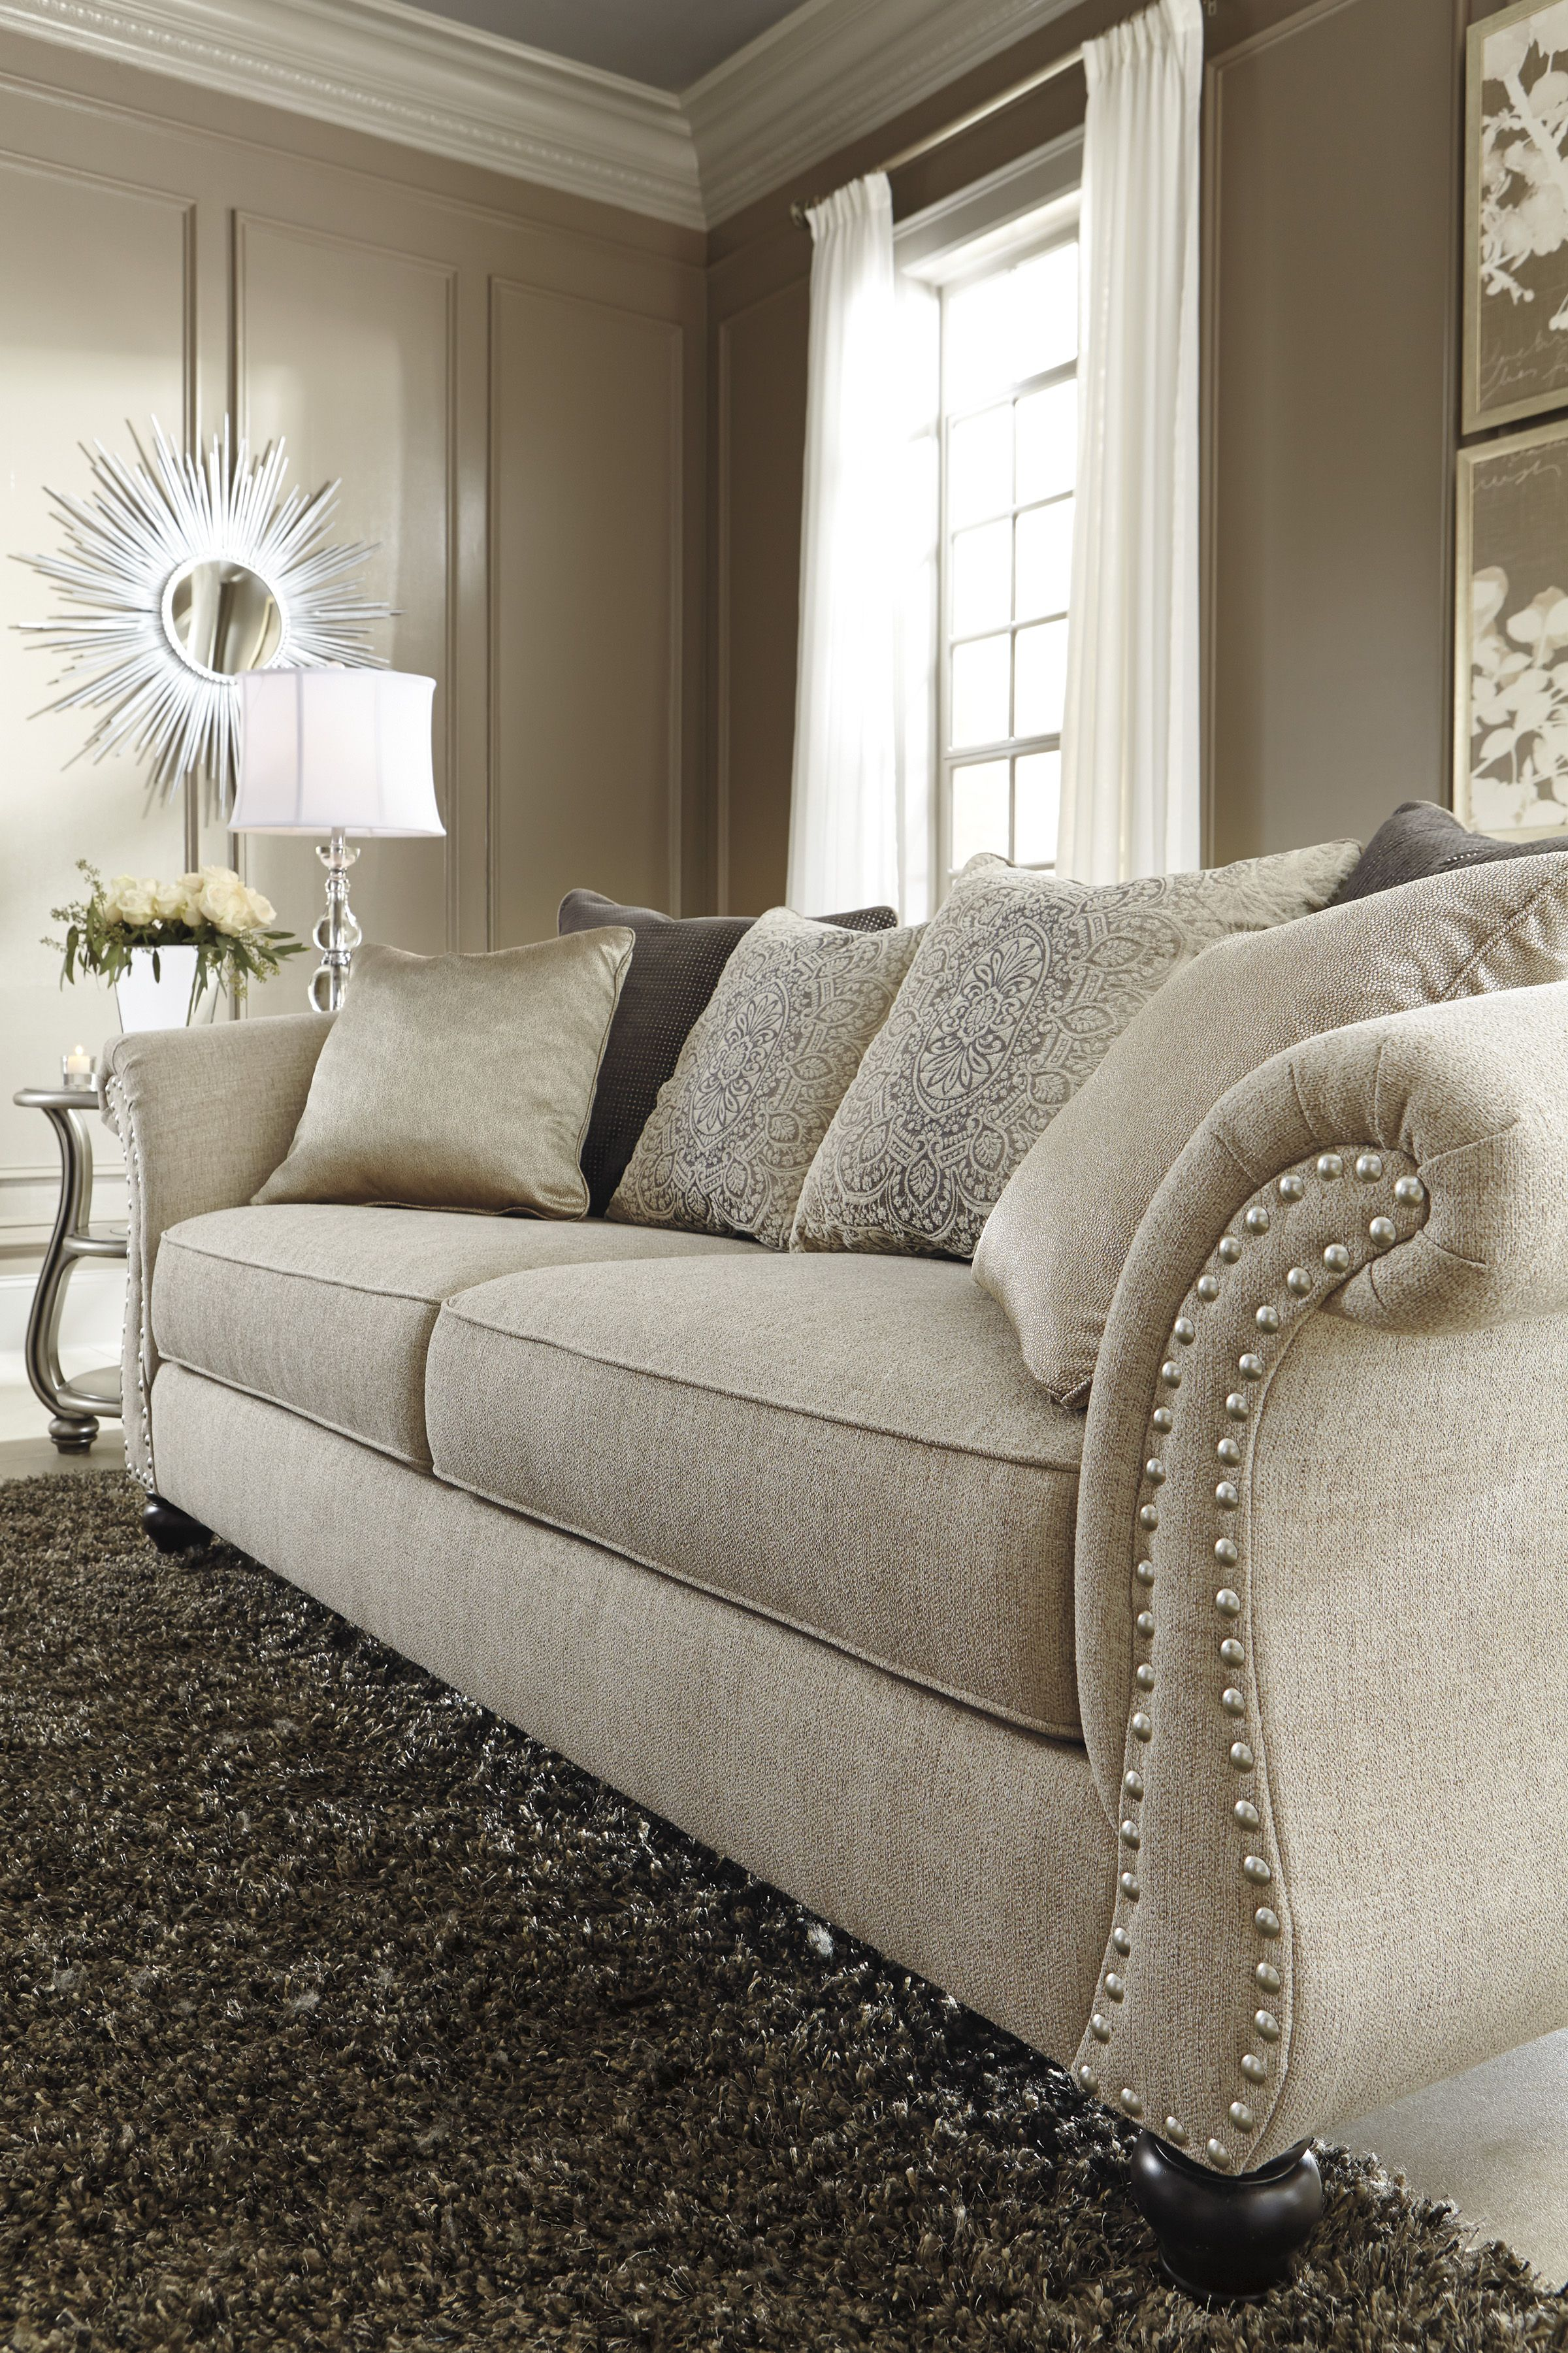 Laura Ashley Muebles Details Of The Ashley Homestore Lemoore Sofa Simply Stunning